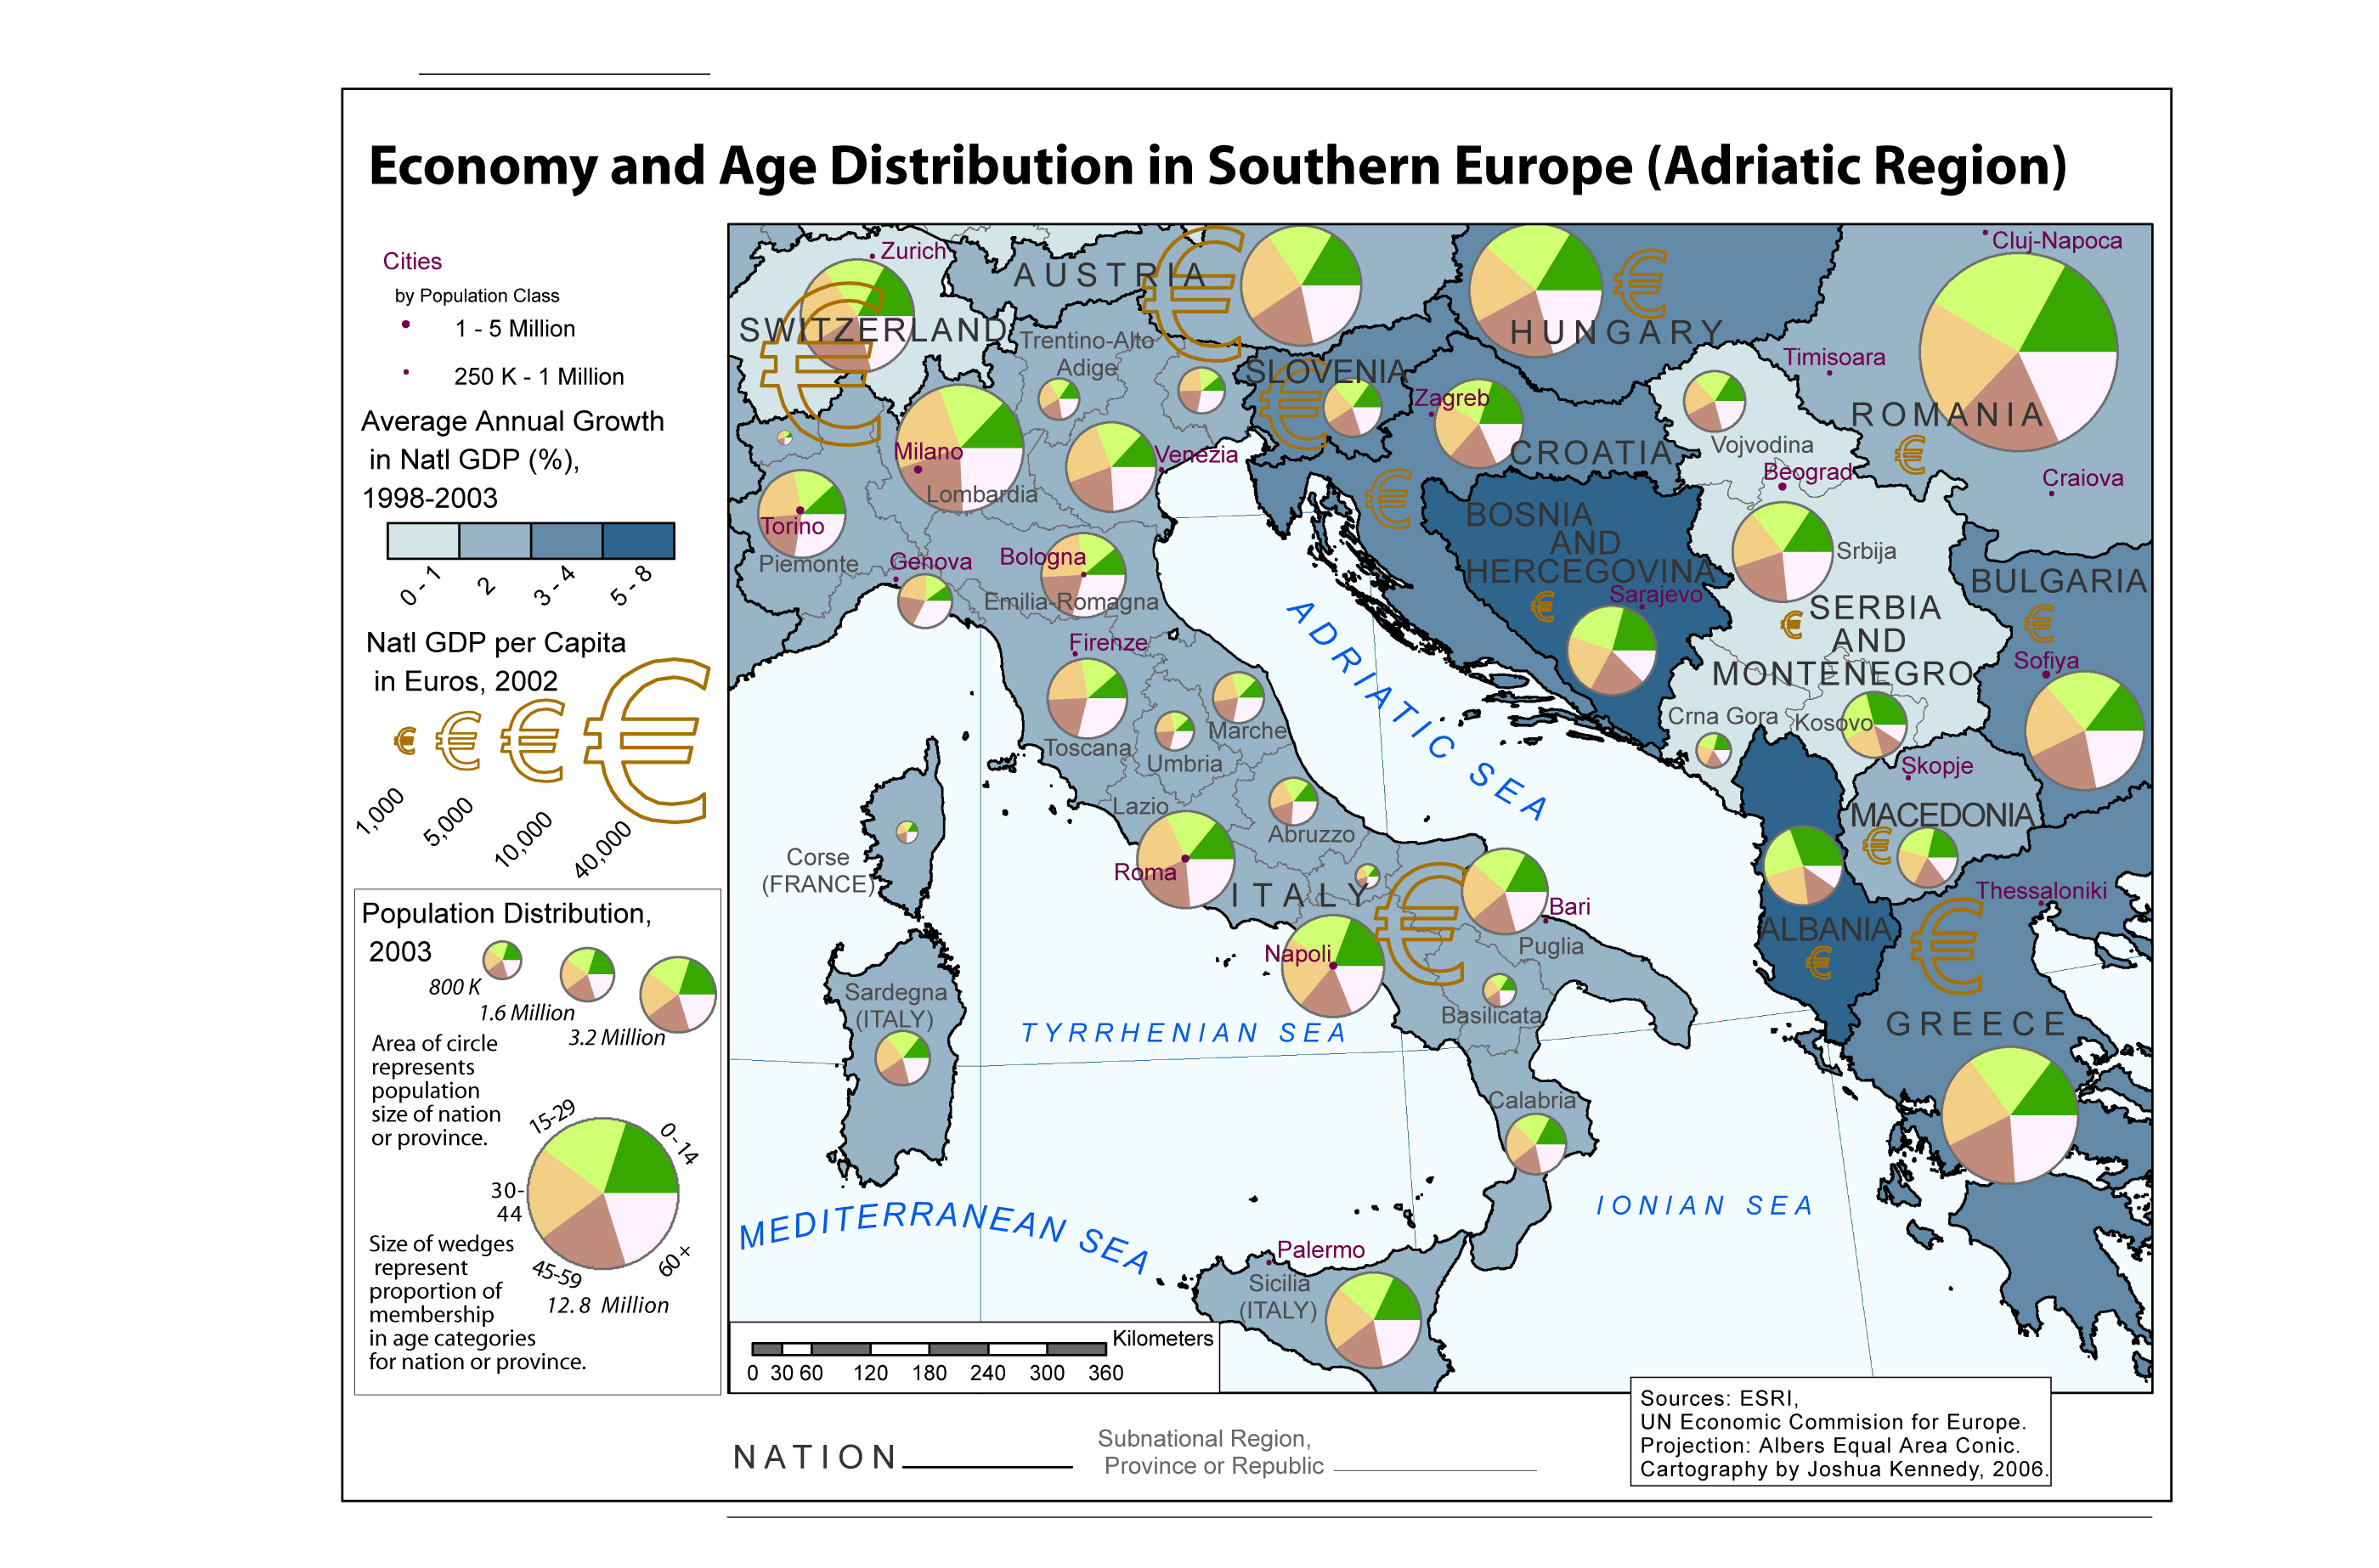 This Map Developed Out Of An Exploration Of Age Distribution Trends In Europe Lower Fertility Rates And Longer Life Expectancy Has Led To An Aging Of The